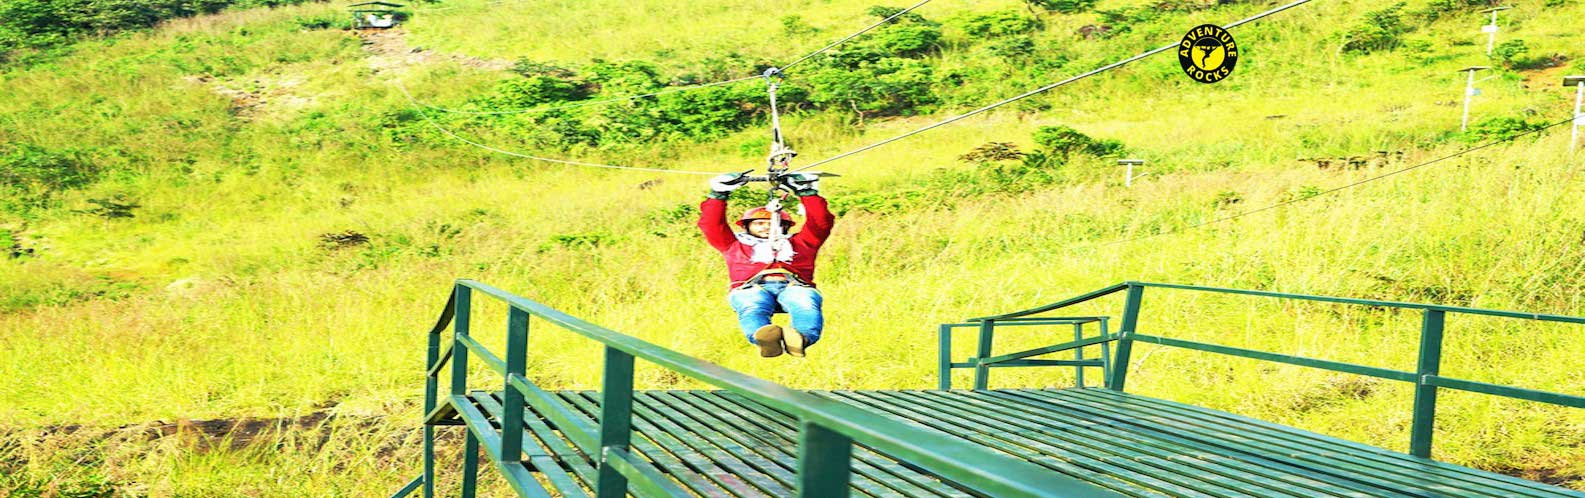 Zip Line Manufacturers in Durgapur